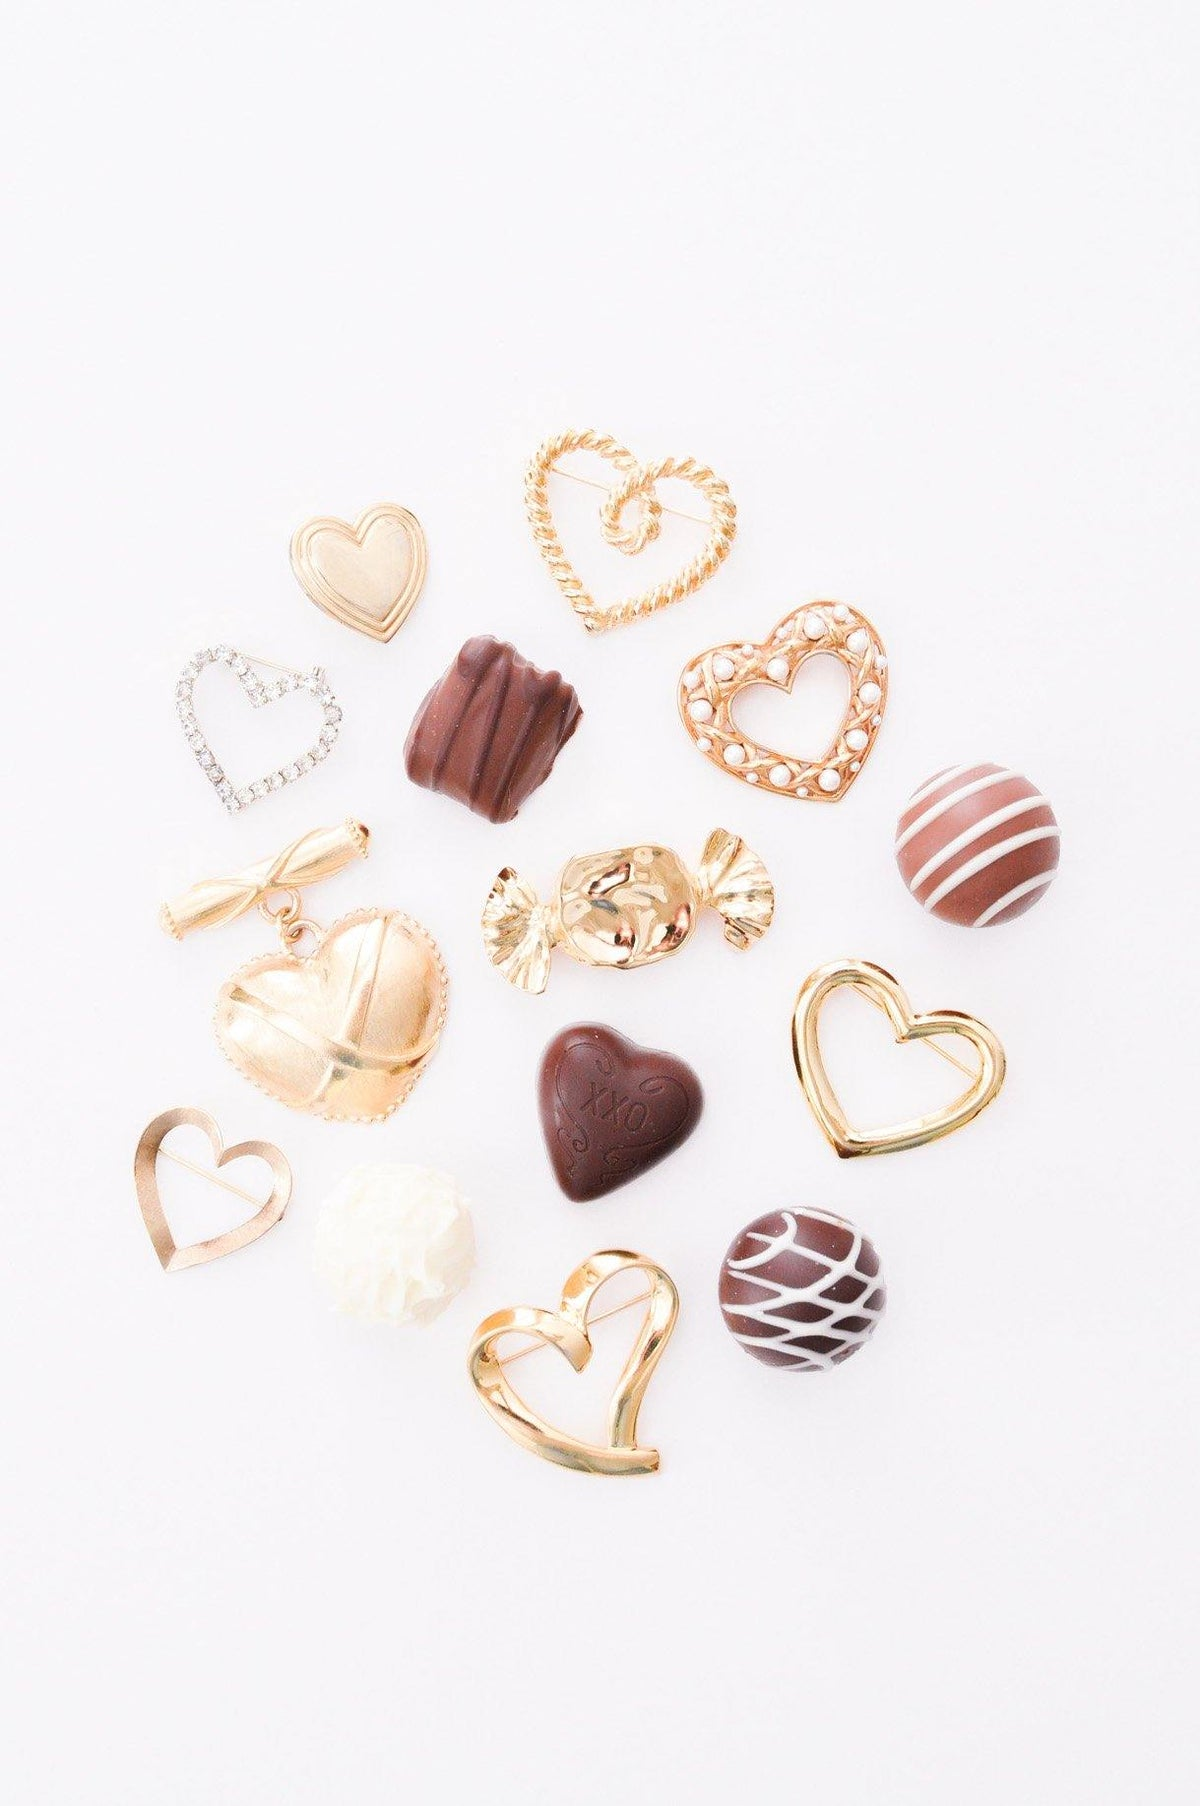 Vintage heart brooches from Sweet & Spark.